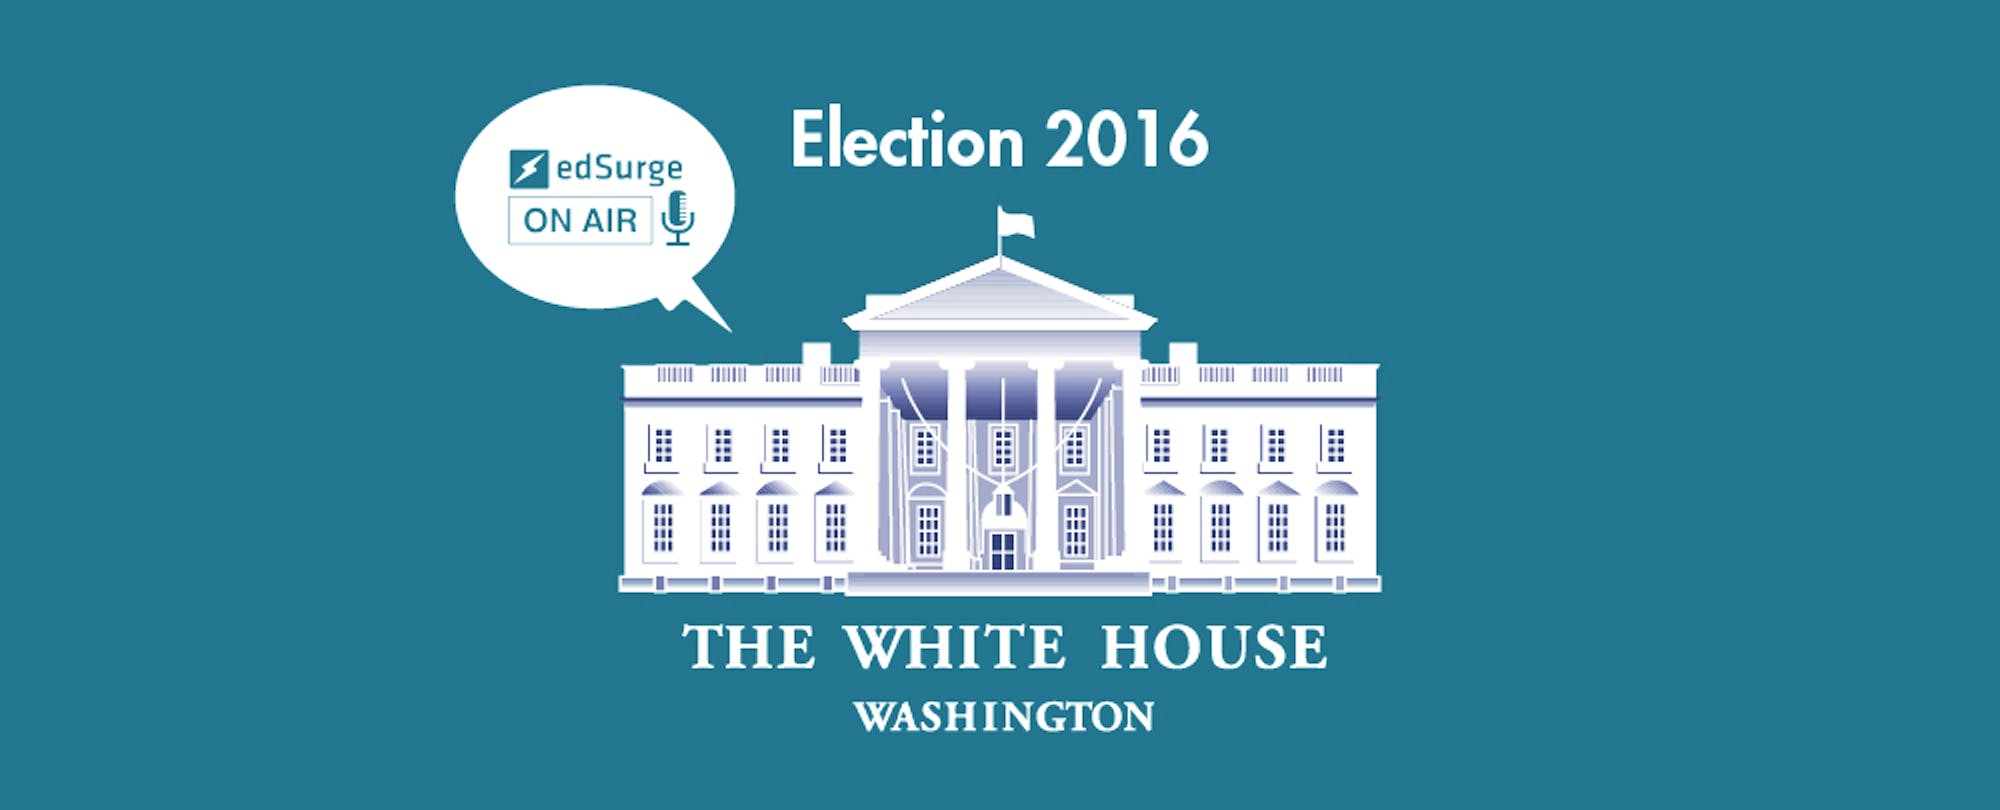 Edtech Election Update: What do Hillary and Jeb Say About Education?